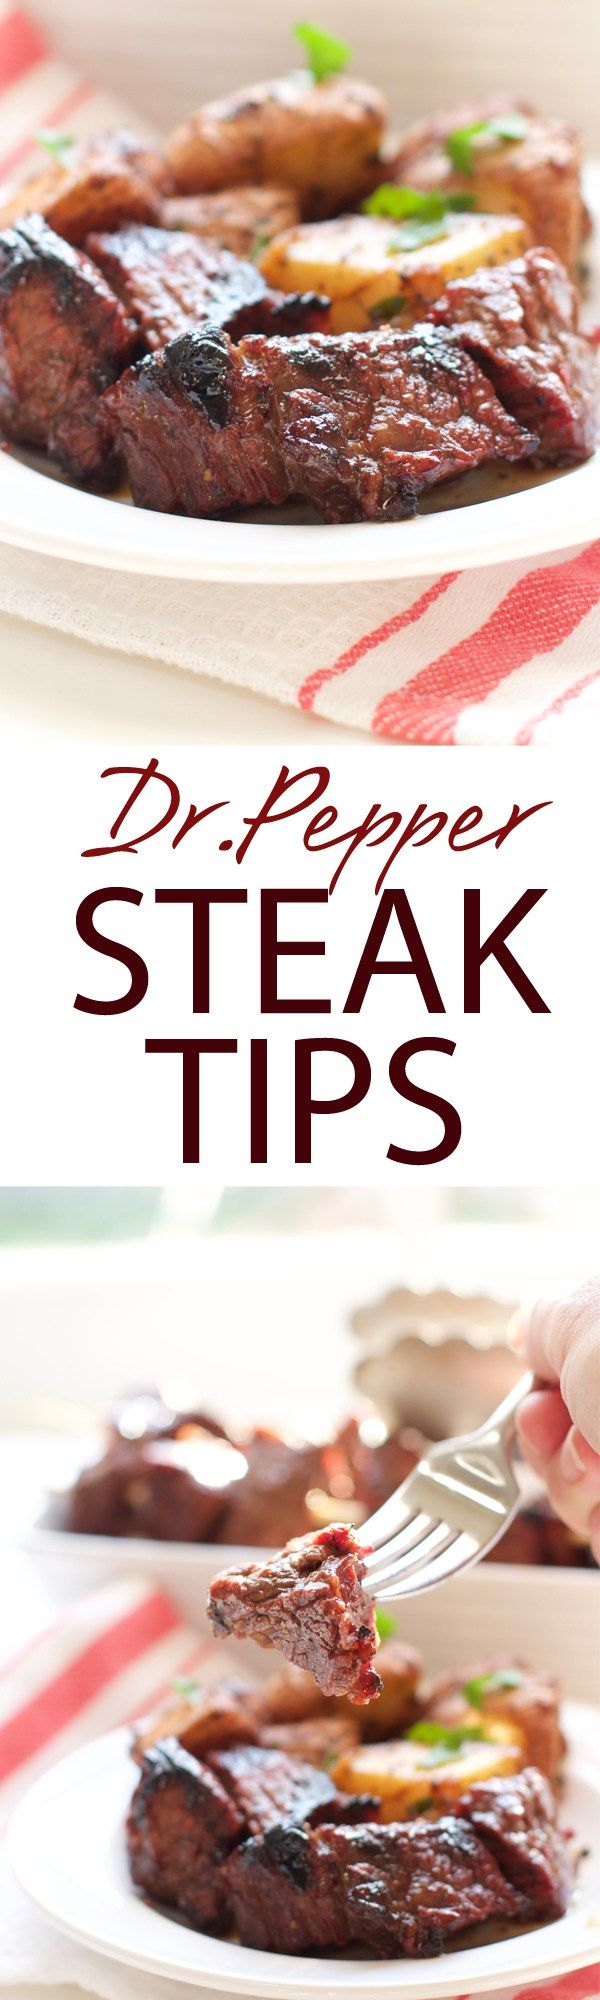 Dr. Pepper Steak Tips | A delicious Dr. Pepper Steak Tip marinade. Filled with sweetness and the spicy kick of Dr. Pepper soda. A juicy steak bite to die for! | forkknifeandlove.com